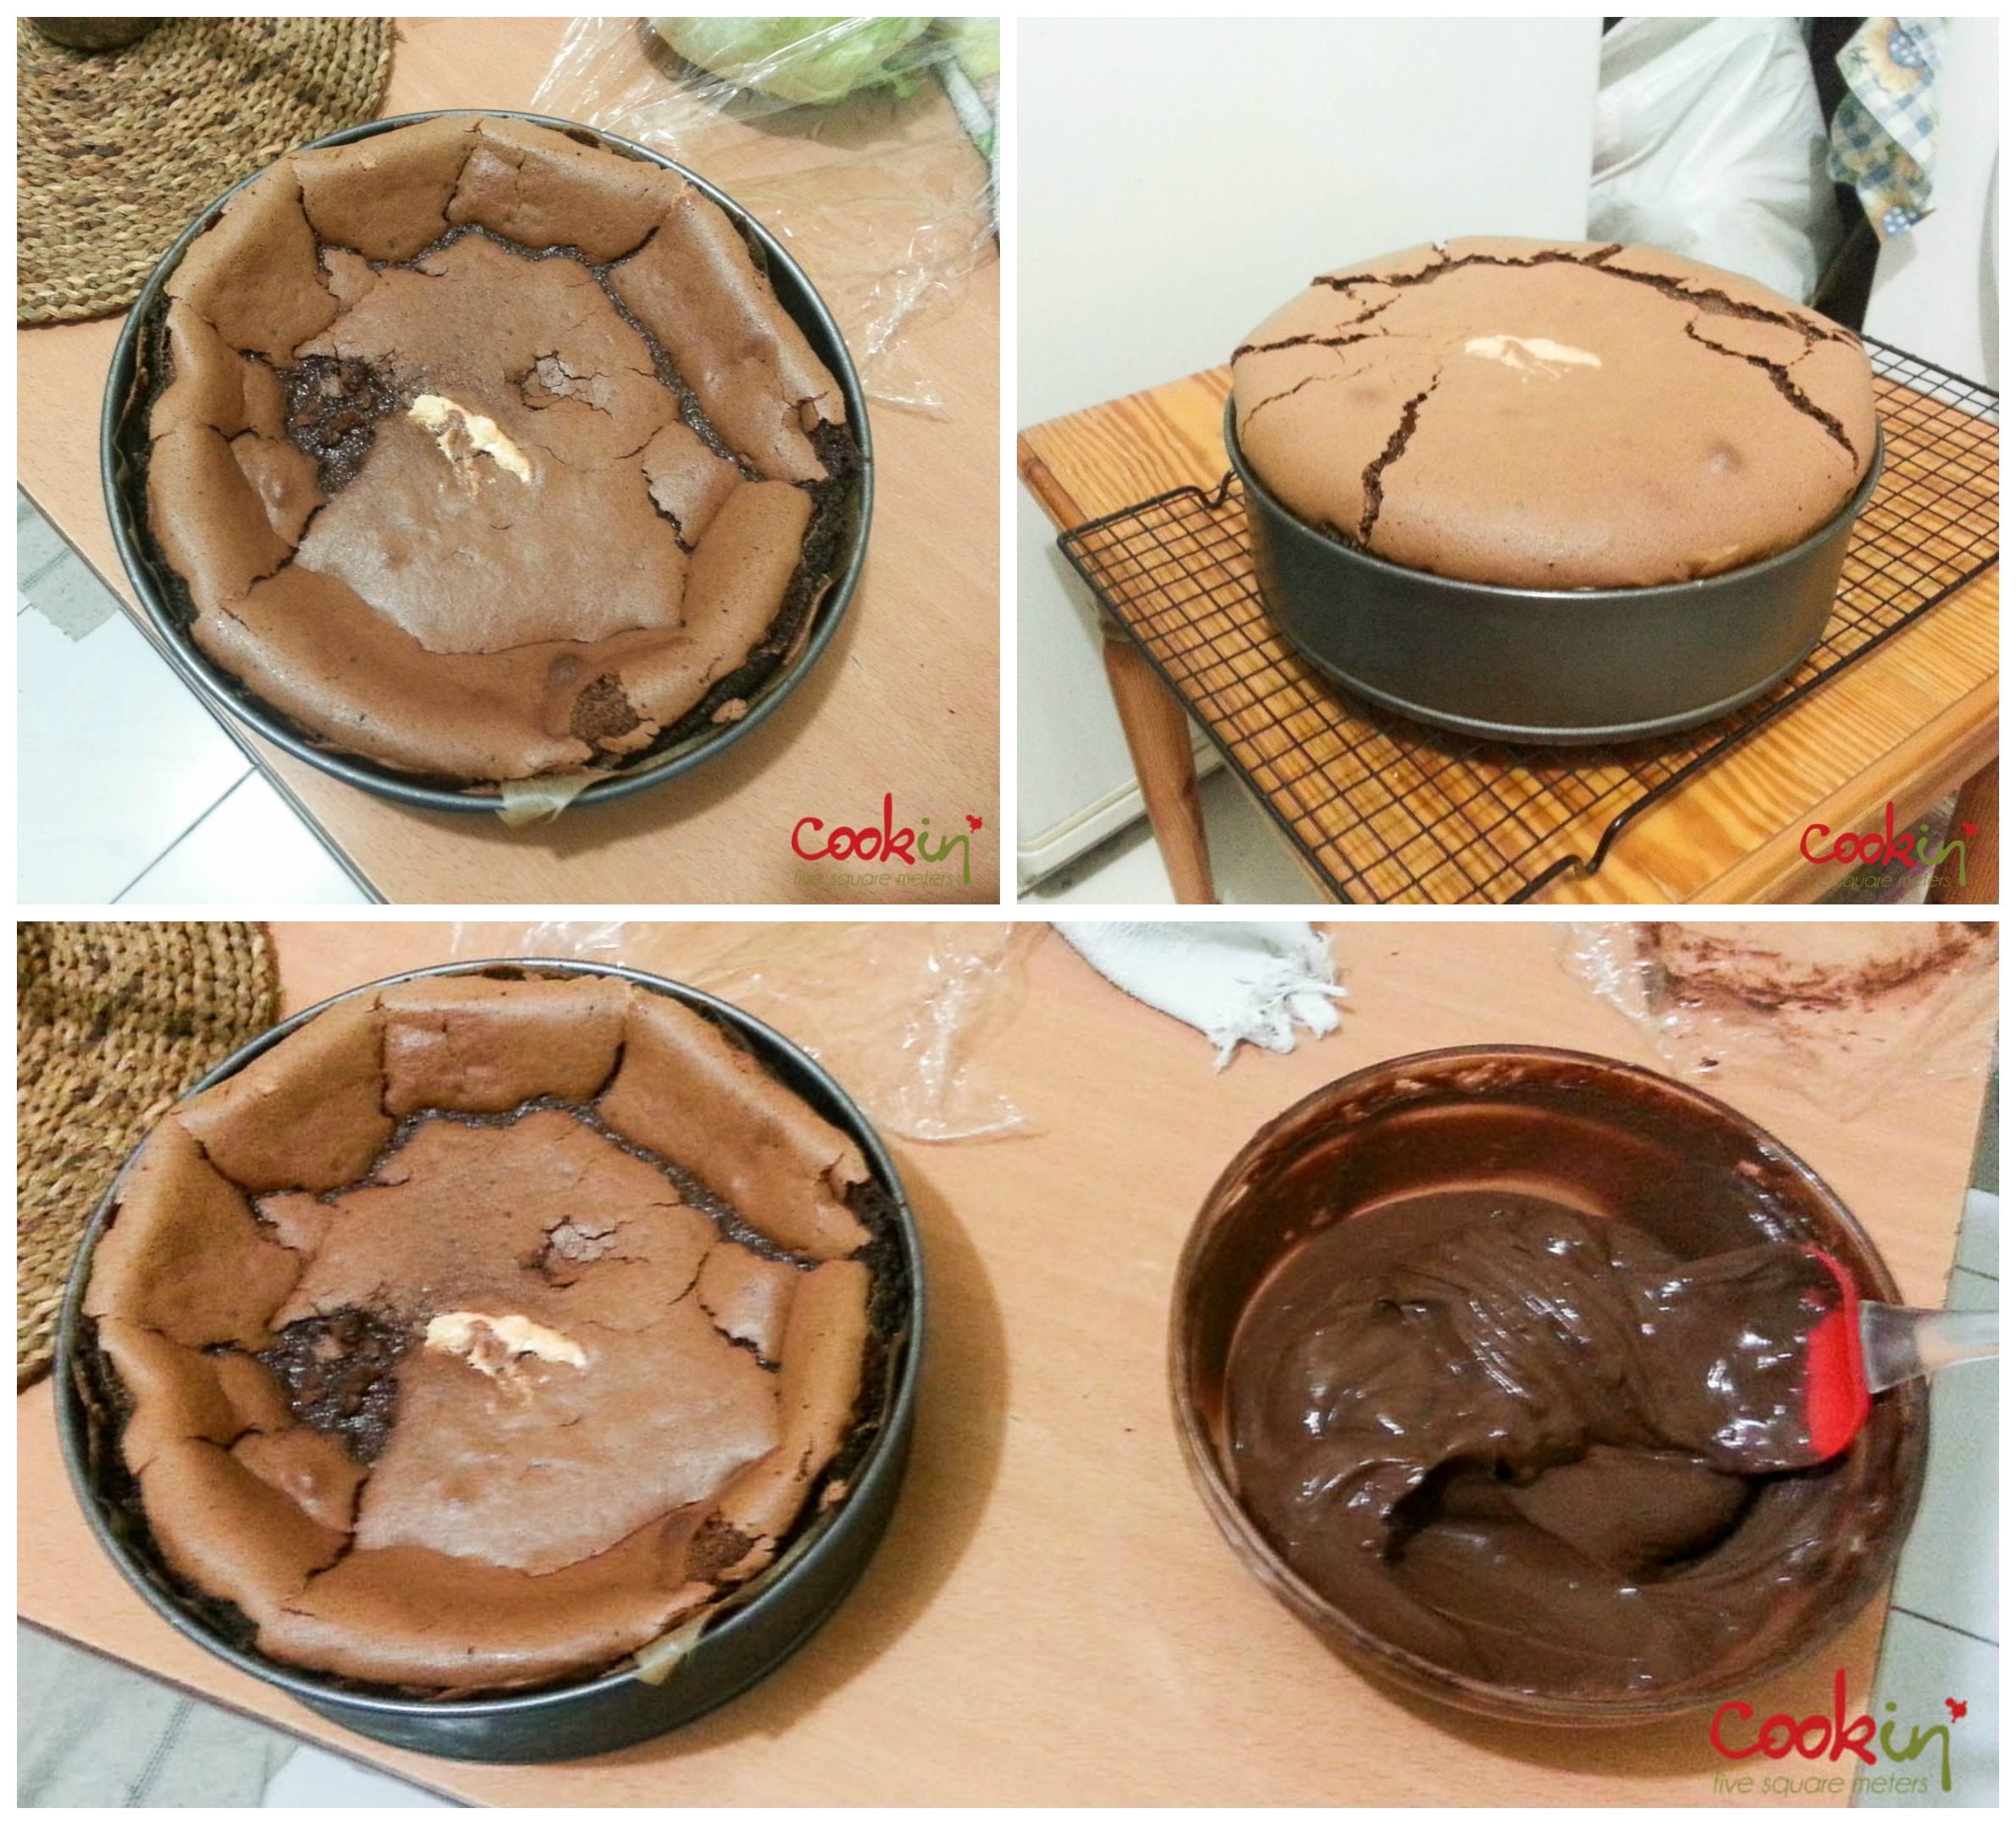 making an apple pie to an mud pie Get mmmmmmmud pie recipe from food network  mmmmmmmud pie  getting reviews recipe courtesy  to turn the pie out of the pan, warm the  sides with a torch and remove the walls slice with a knife  traditional apple pie  recipe courtesy  make our top 5 no-bake desserts before summer ends  sep 4, 2018.